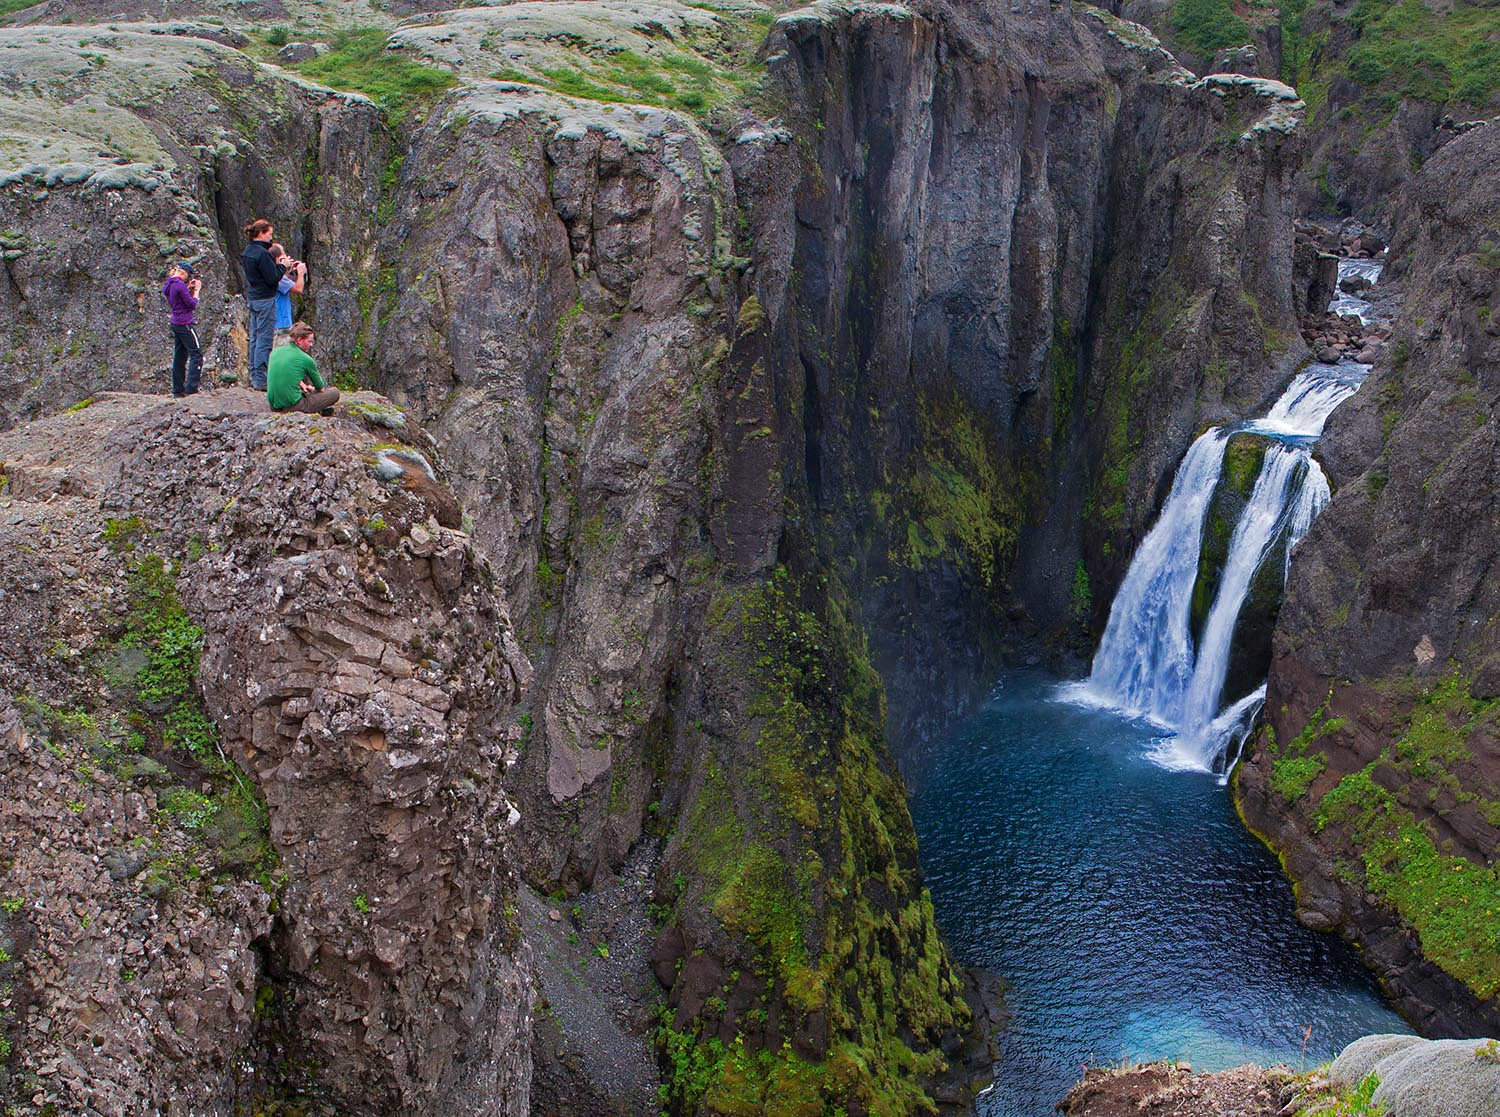 Magnificent waterfalls on the way